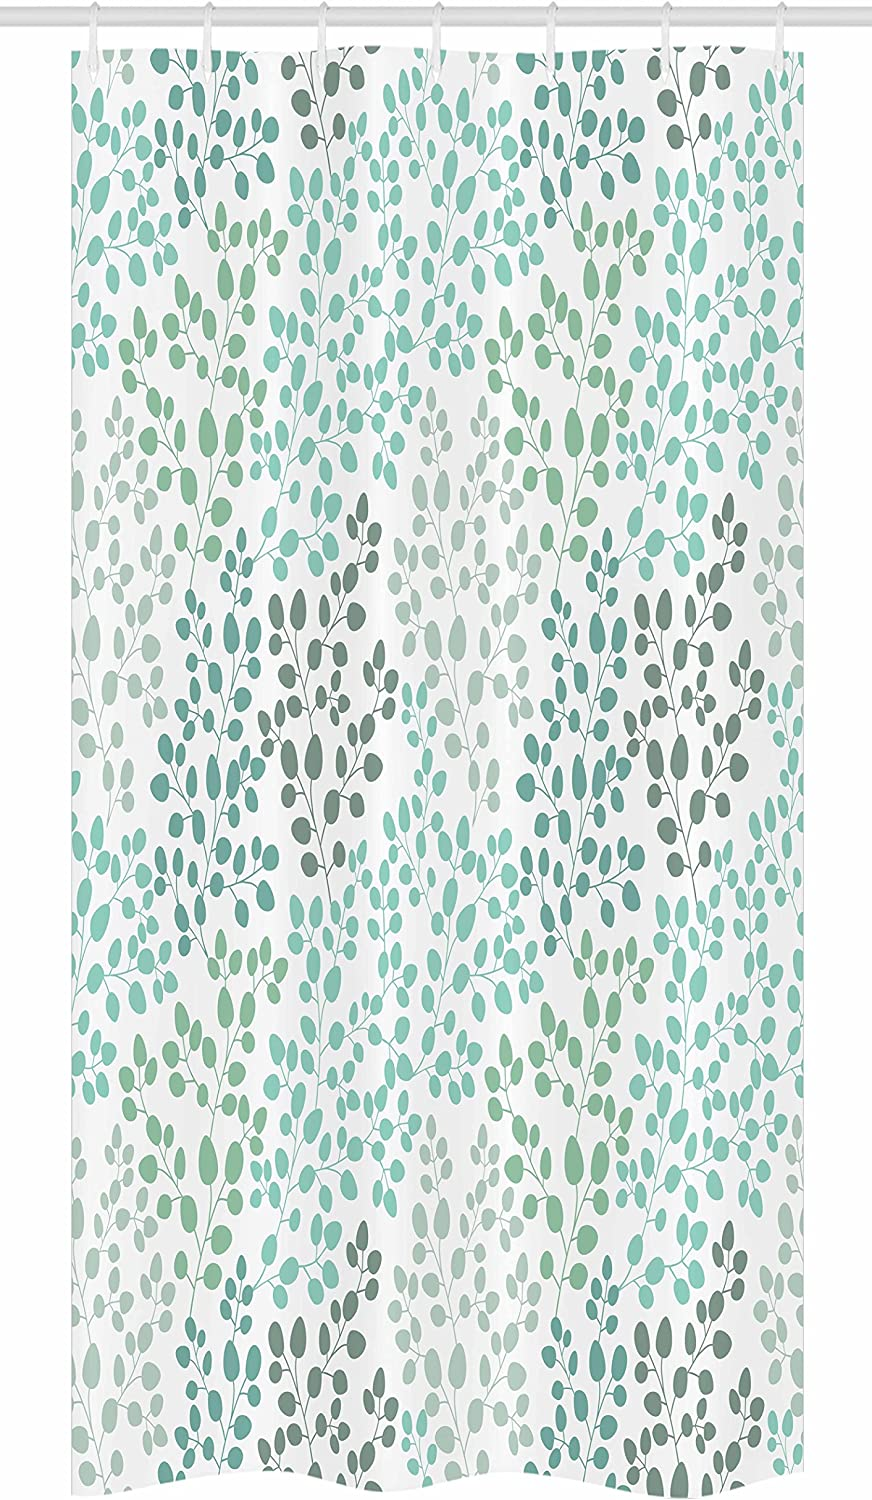 Ambesonne Leaf Stall Shower Curtain, Pattern with Leaf Branches Silhouette Nature Theme Foliage Forest, Fabric Bathroom Decor Set with Hooks, 36